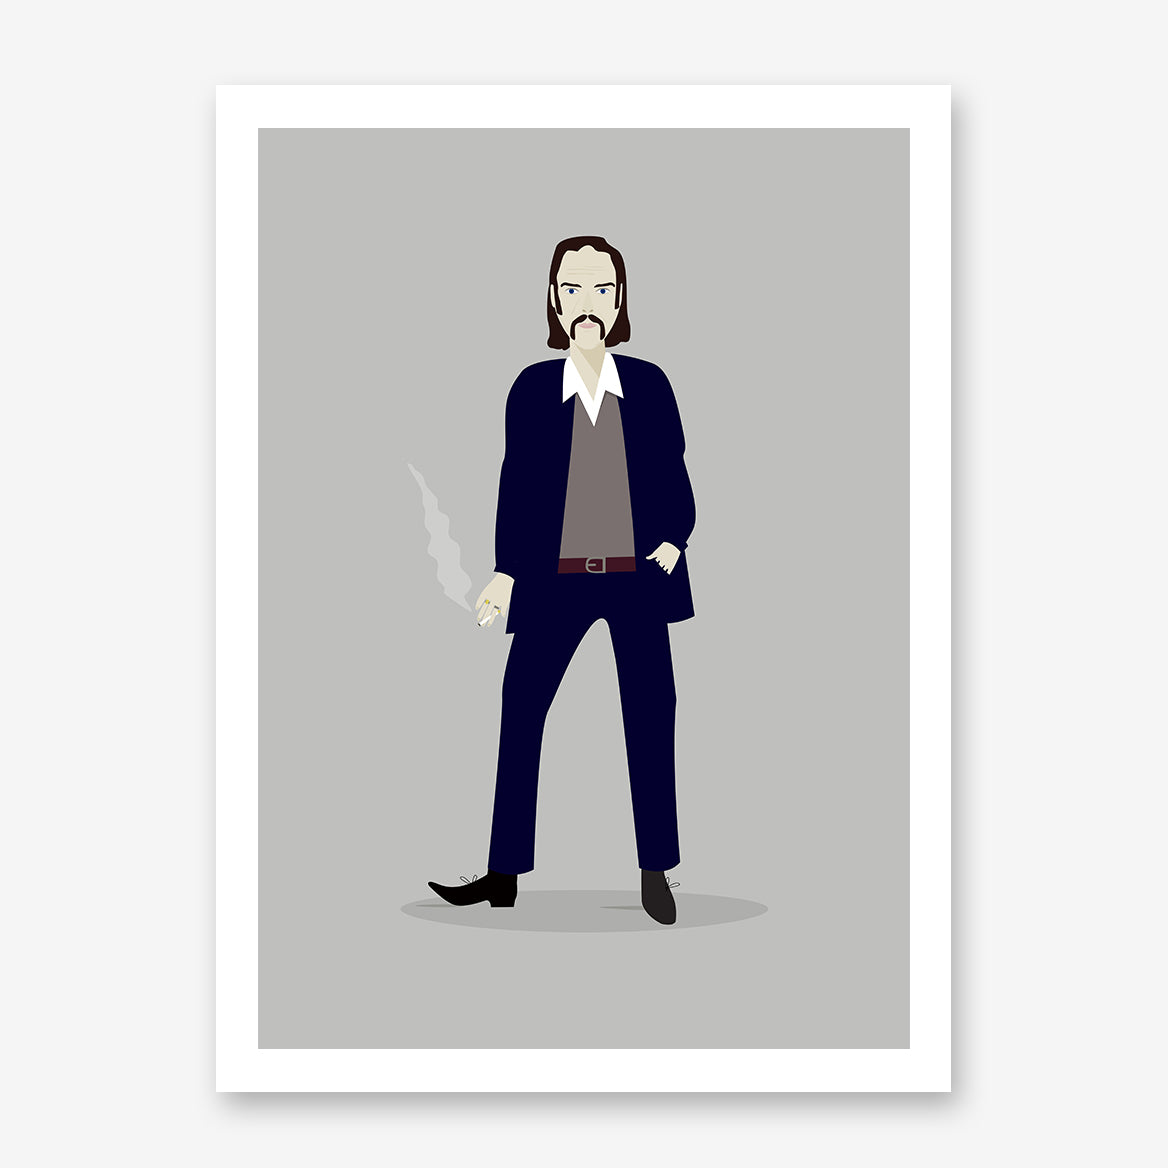 Celebrity illustration print with Nick Cave stylishly drawn by Judy Kaufmann to bring out the essence of his style and character